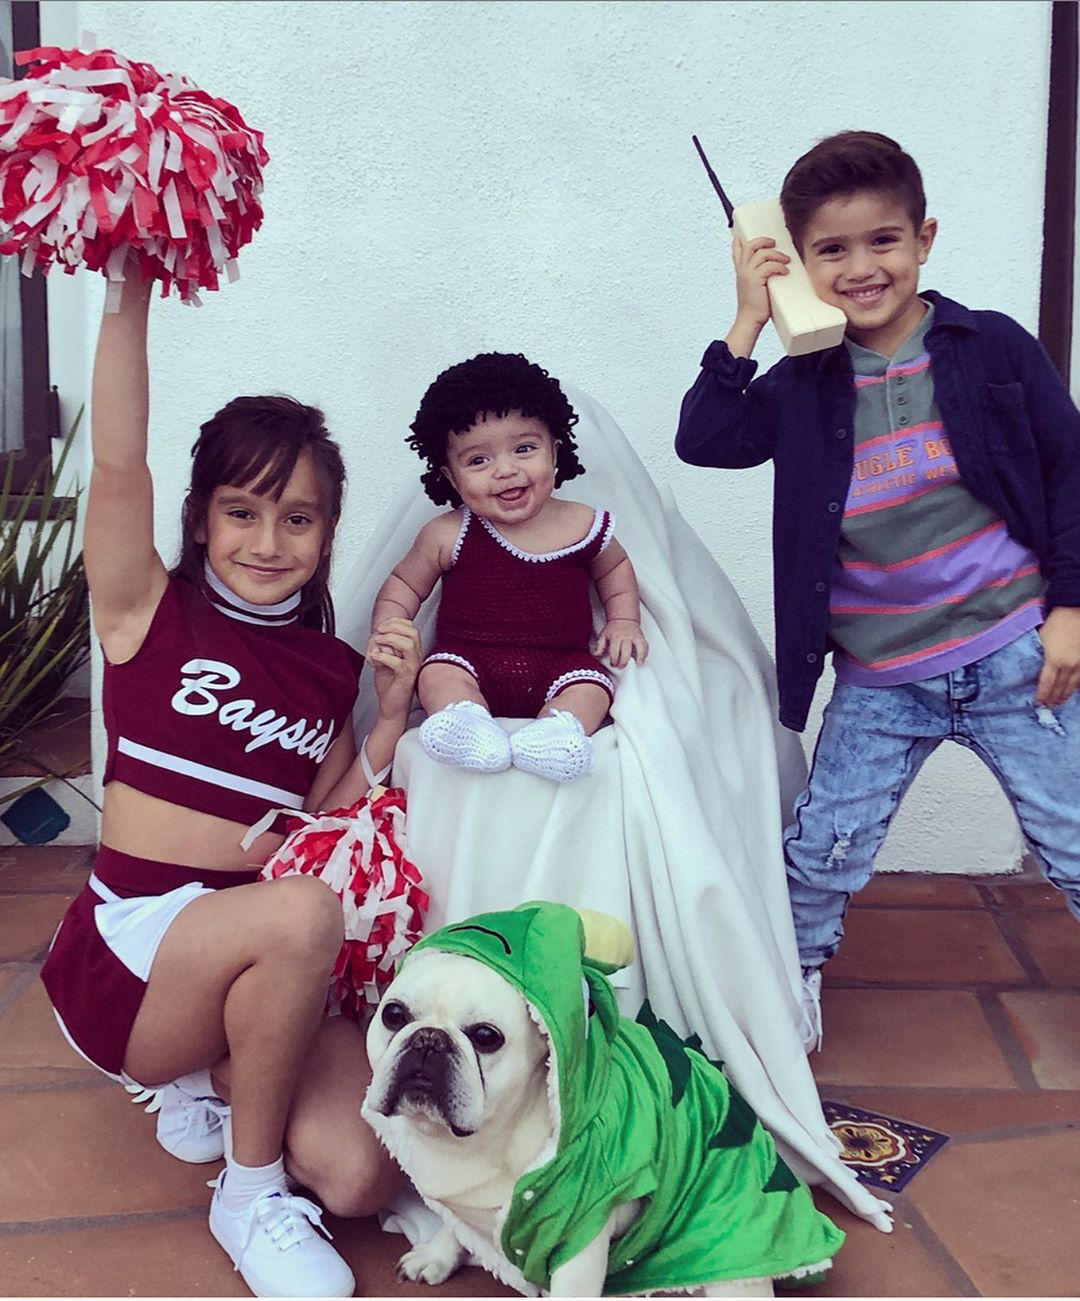 Slater S Squad Mario Lopez S Kids Adorably Channel Saved By The